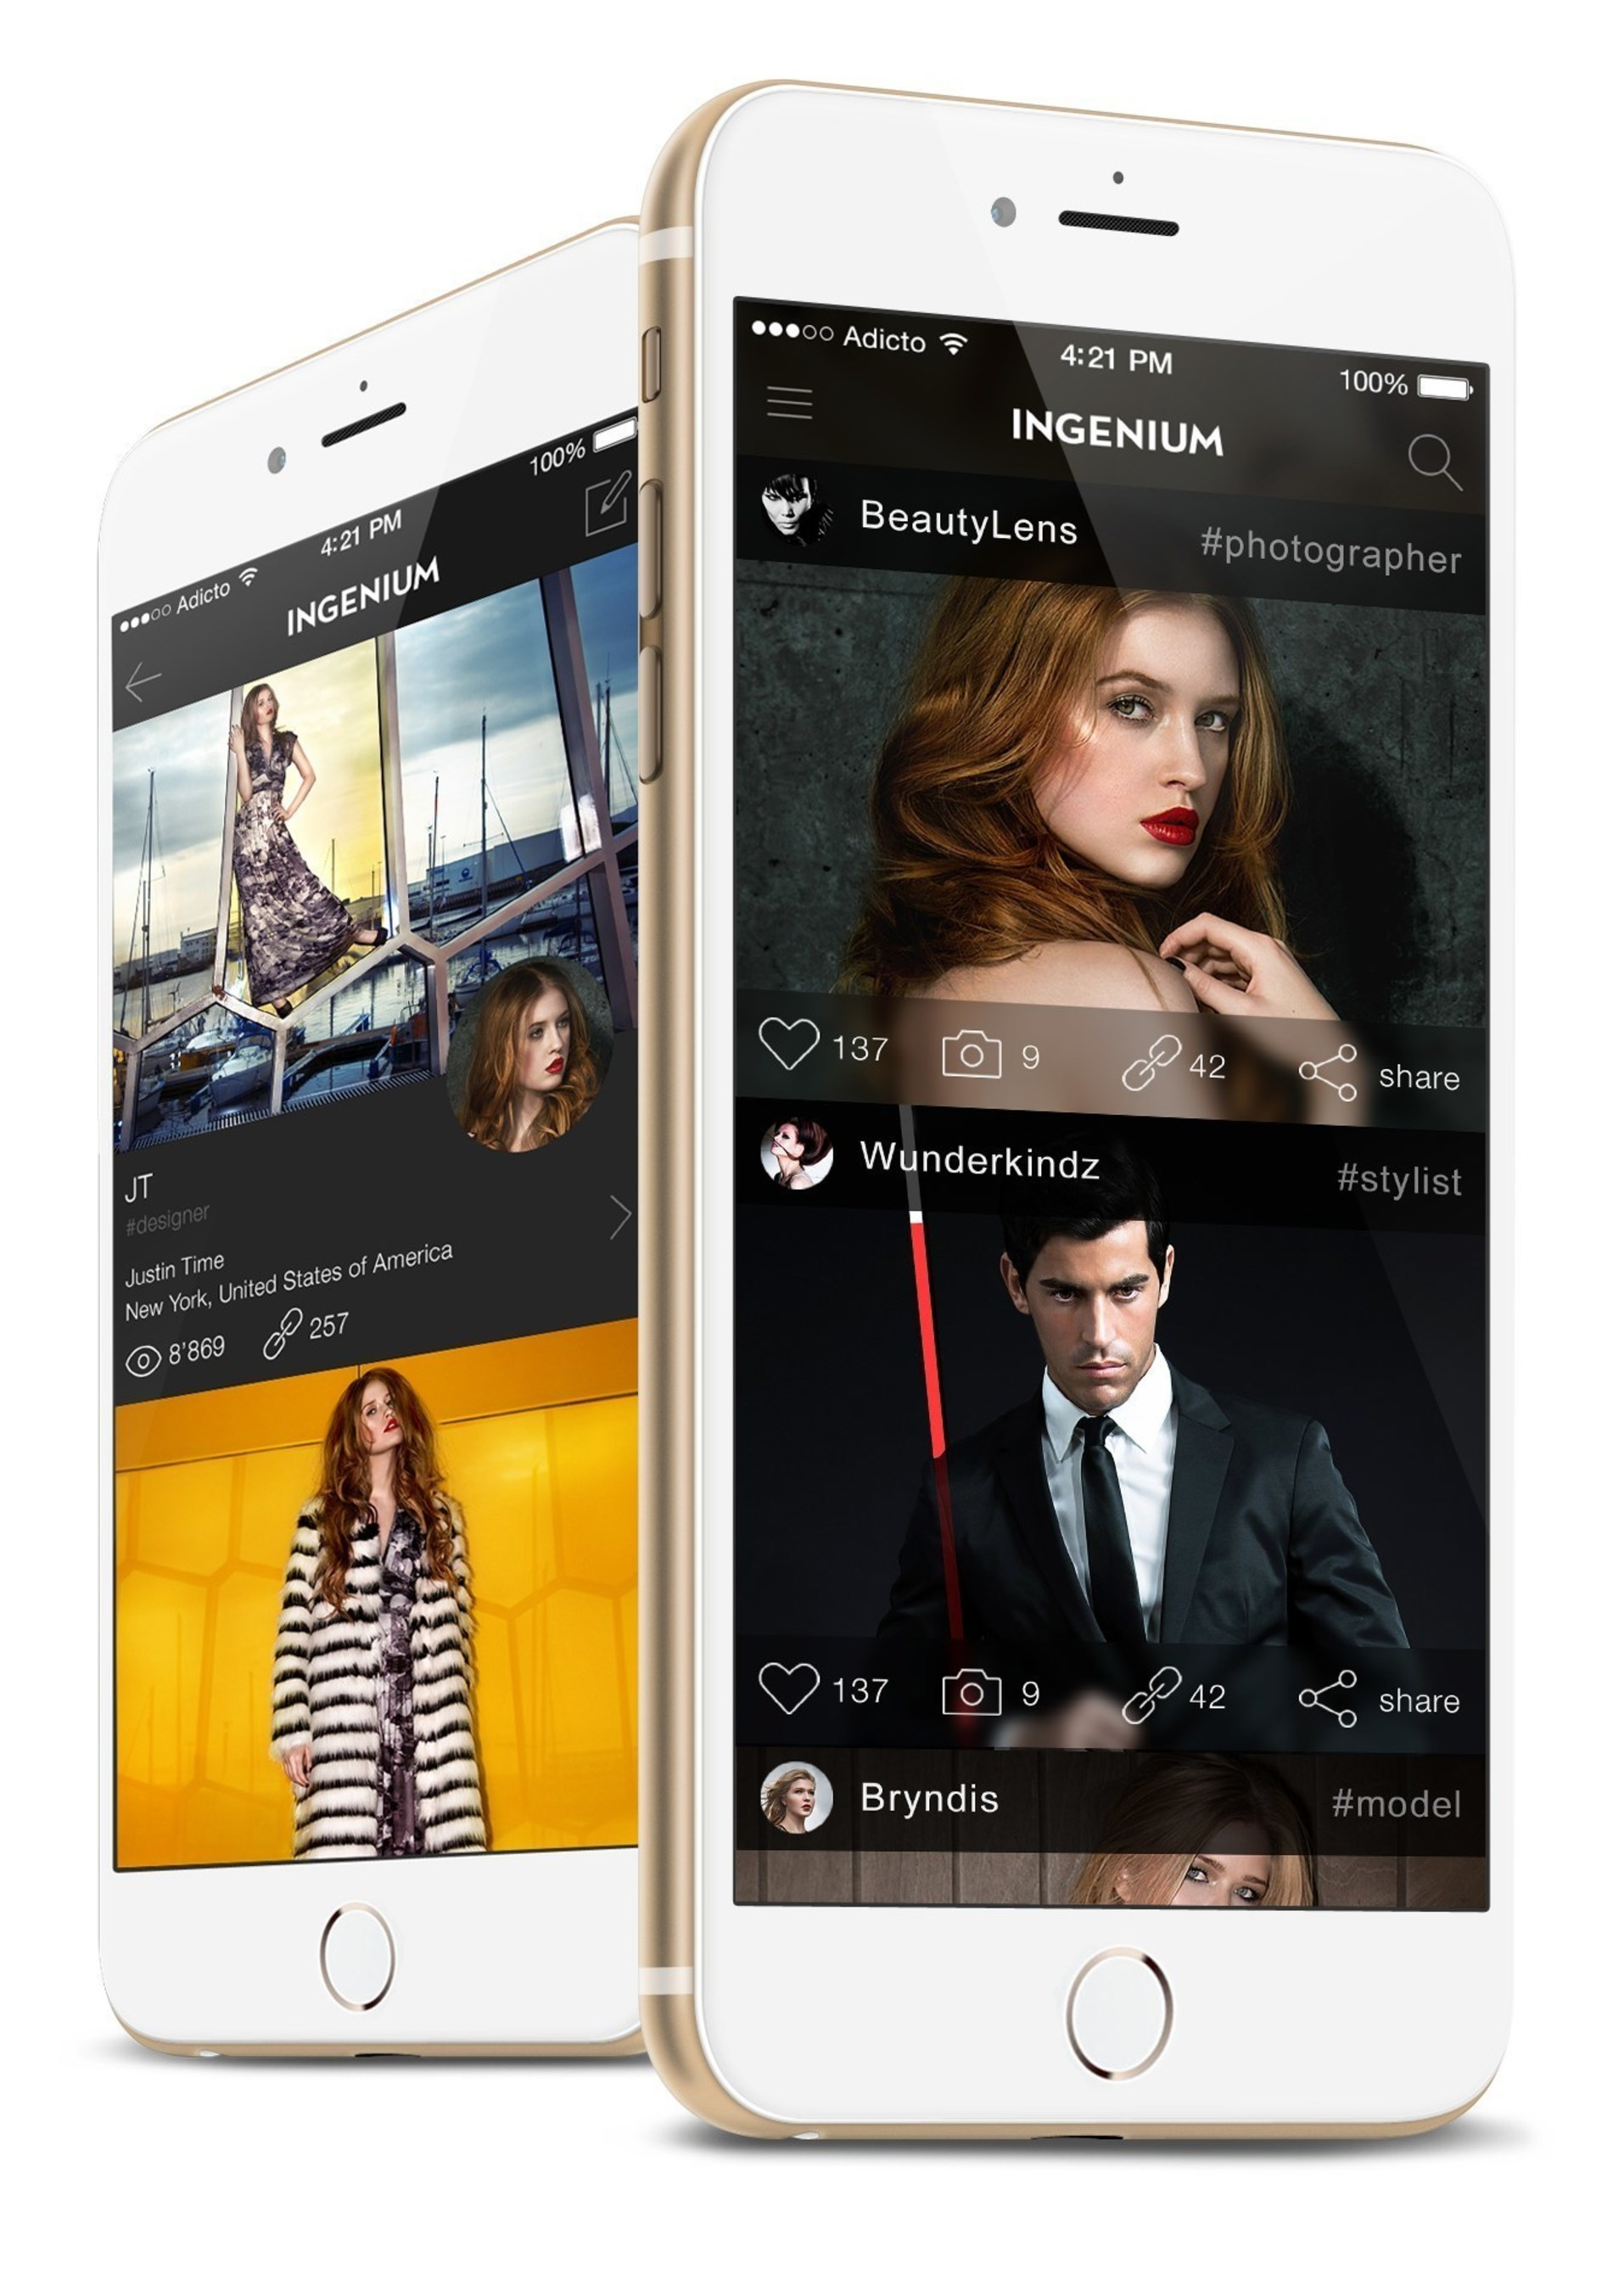 Ingenium Launches the First Fashion Industry Social Network for iOS